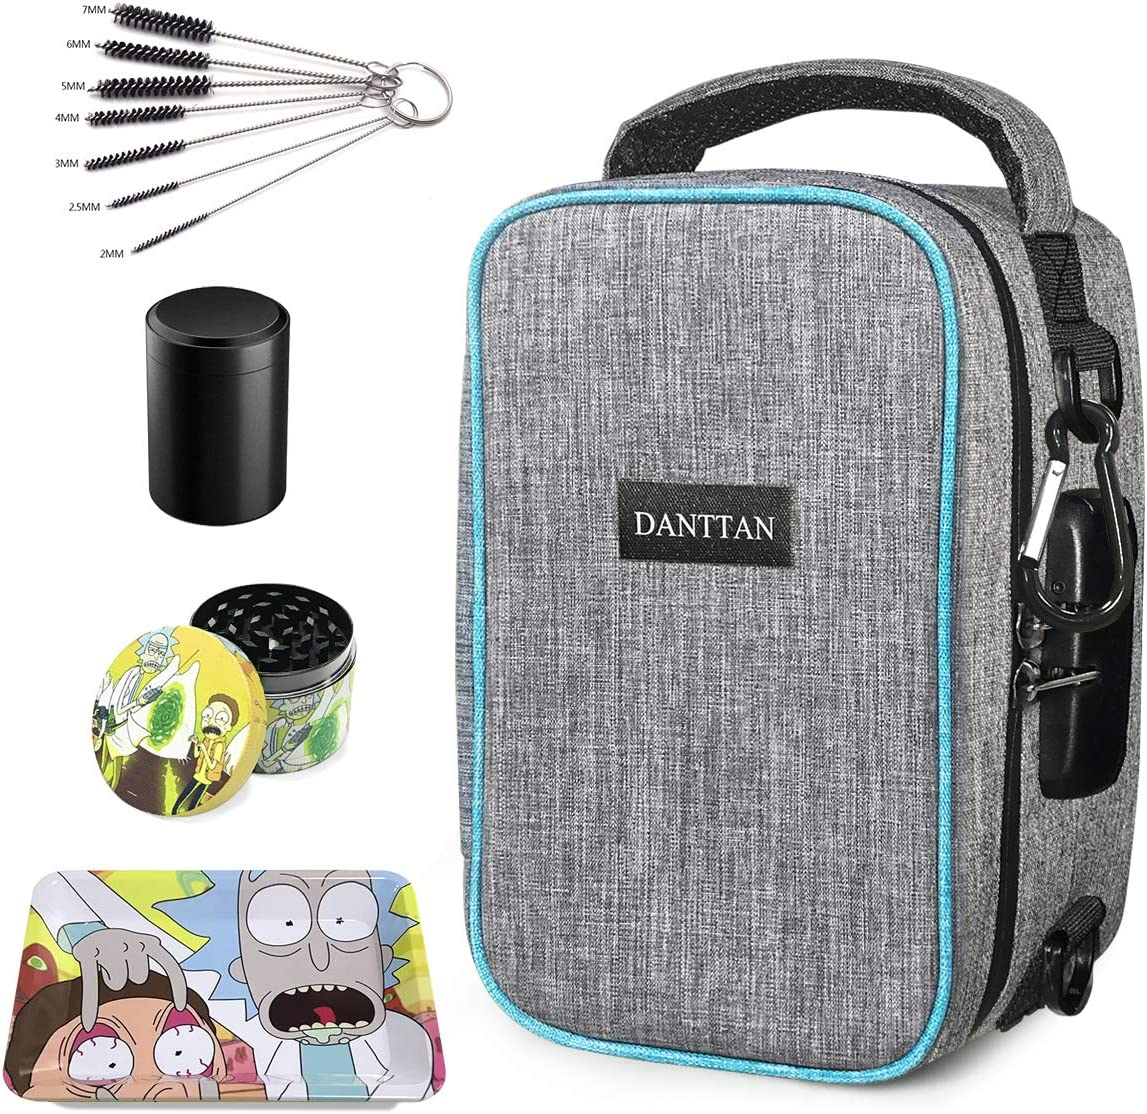 Smell Proof favorite Bag with Combination Popularity Stash Herb Odor Lock Set